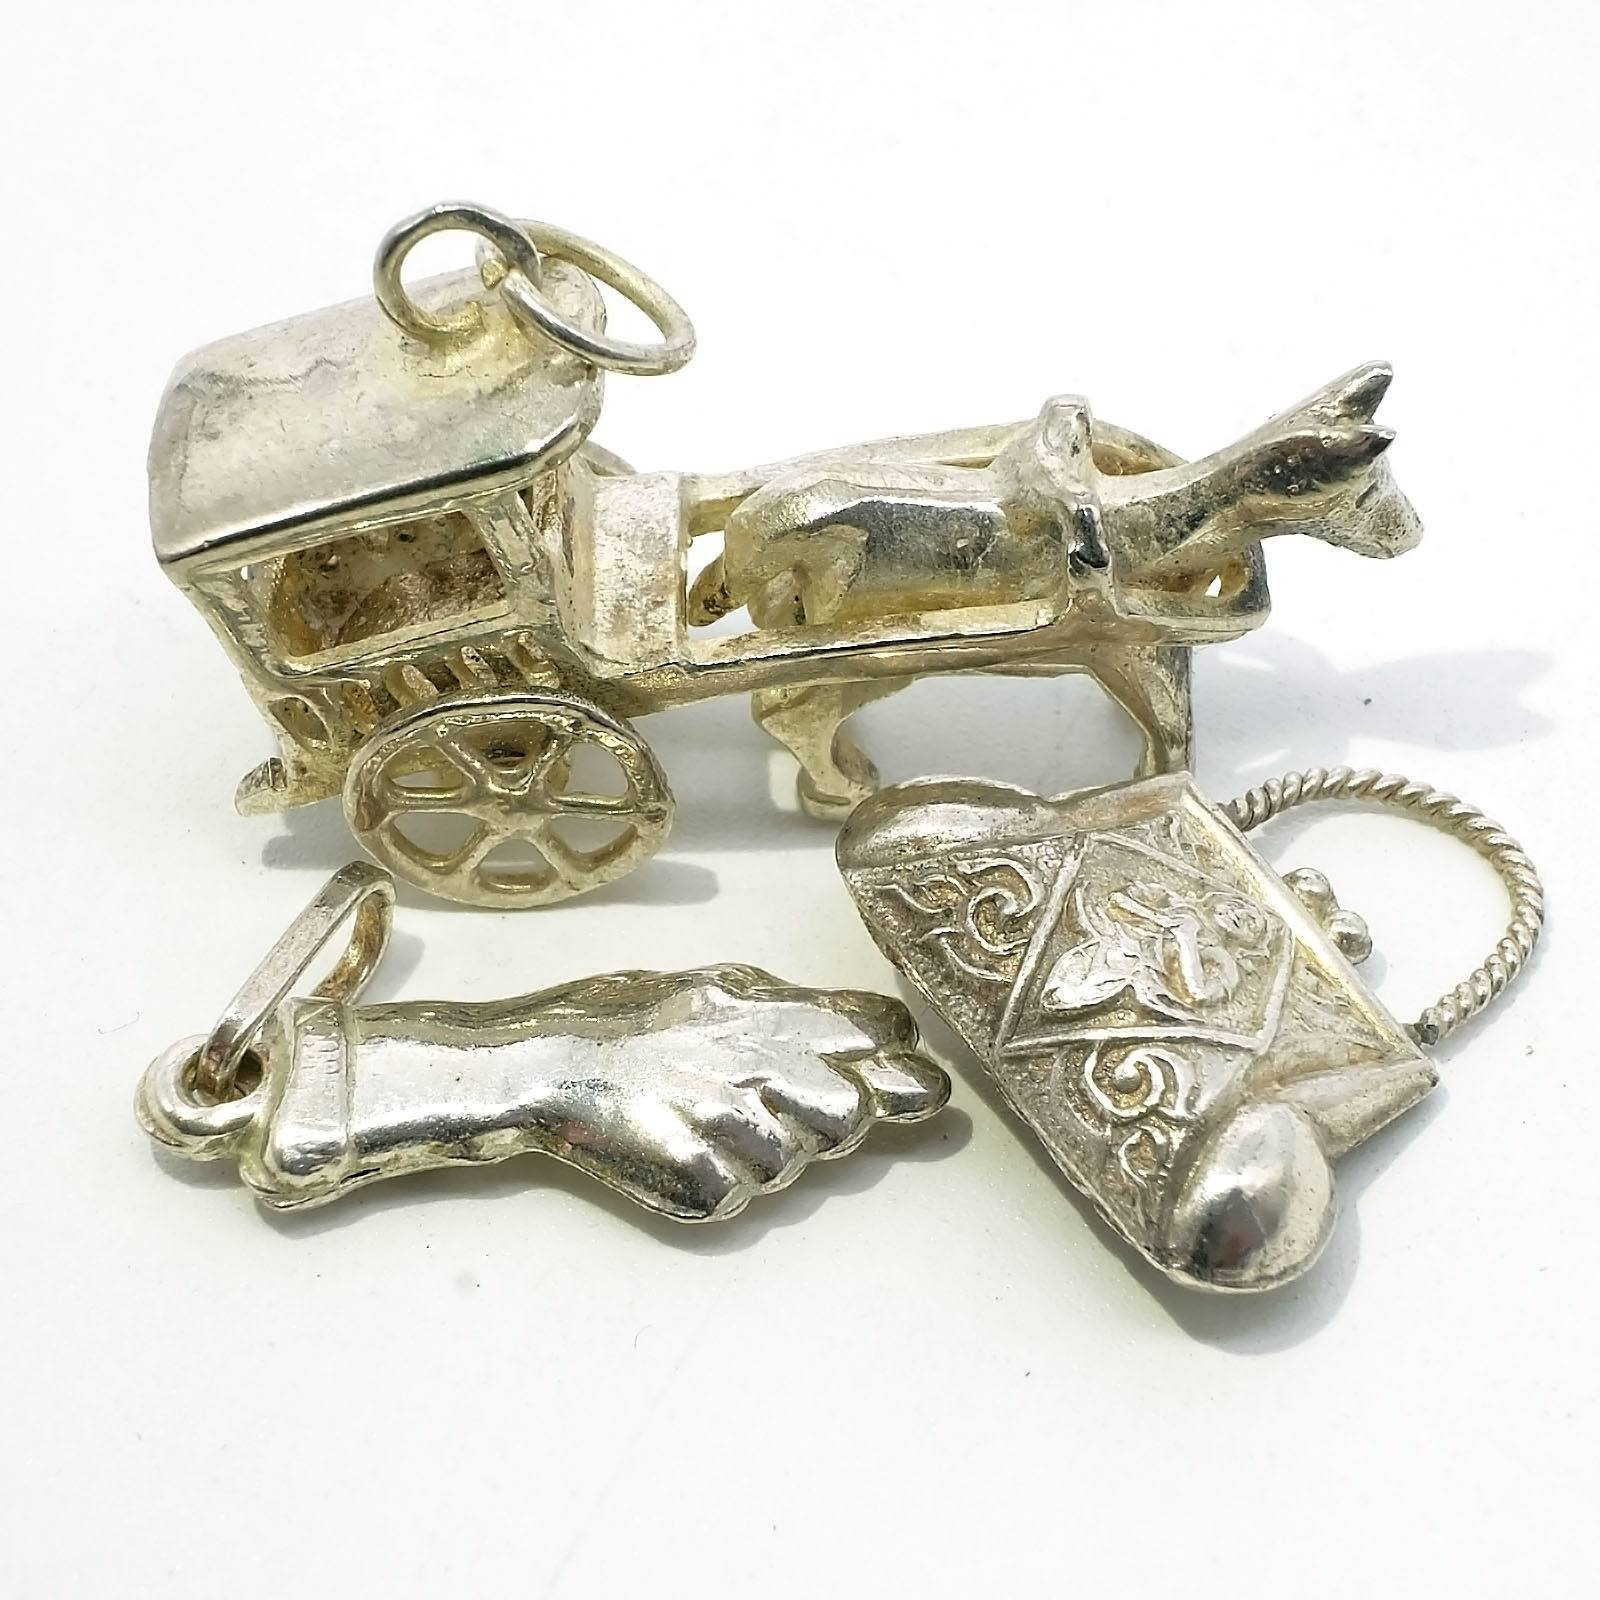 'Three Sterling Silver Charms'